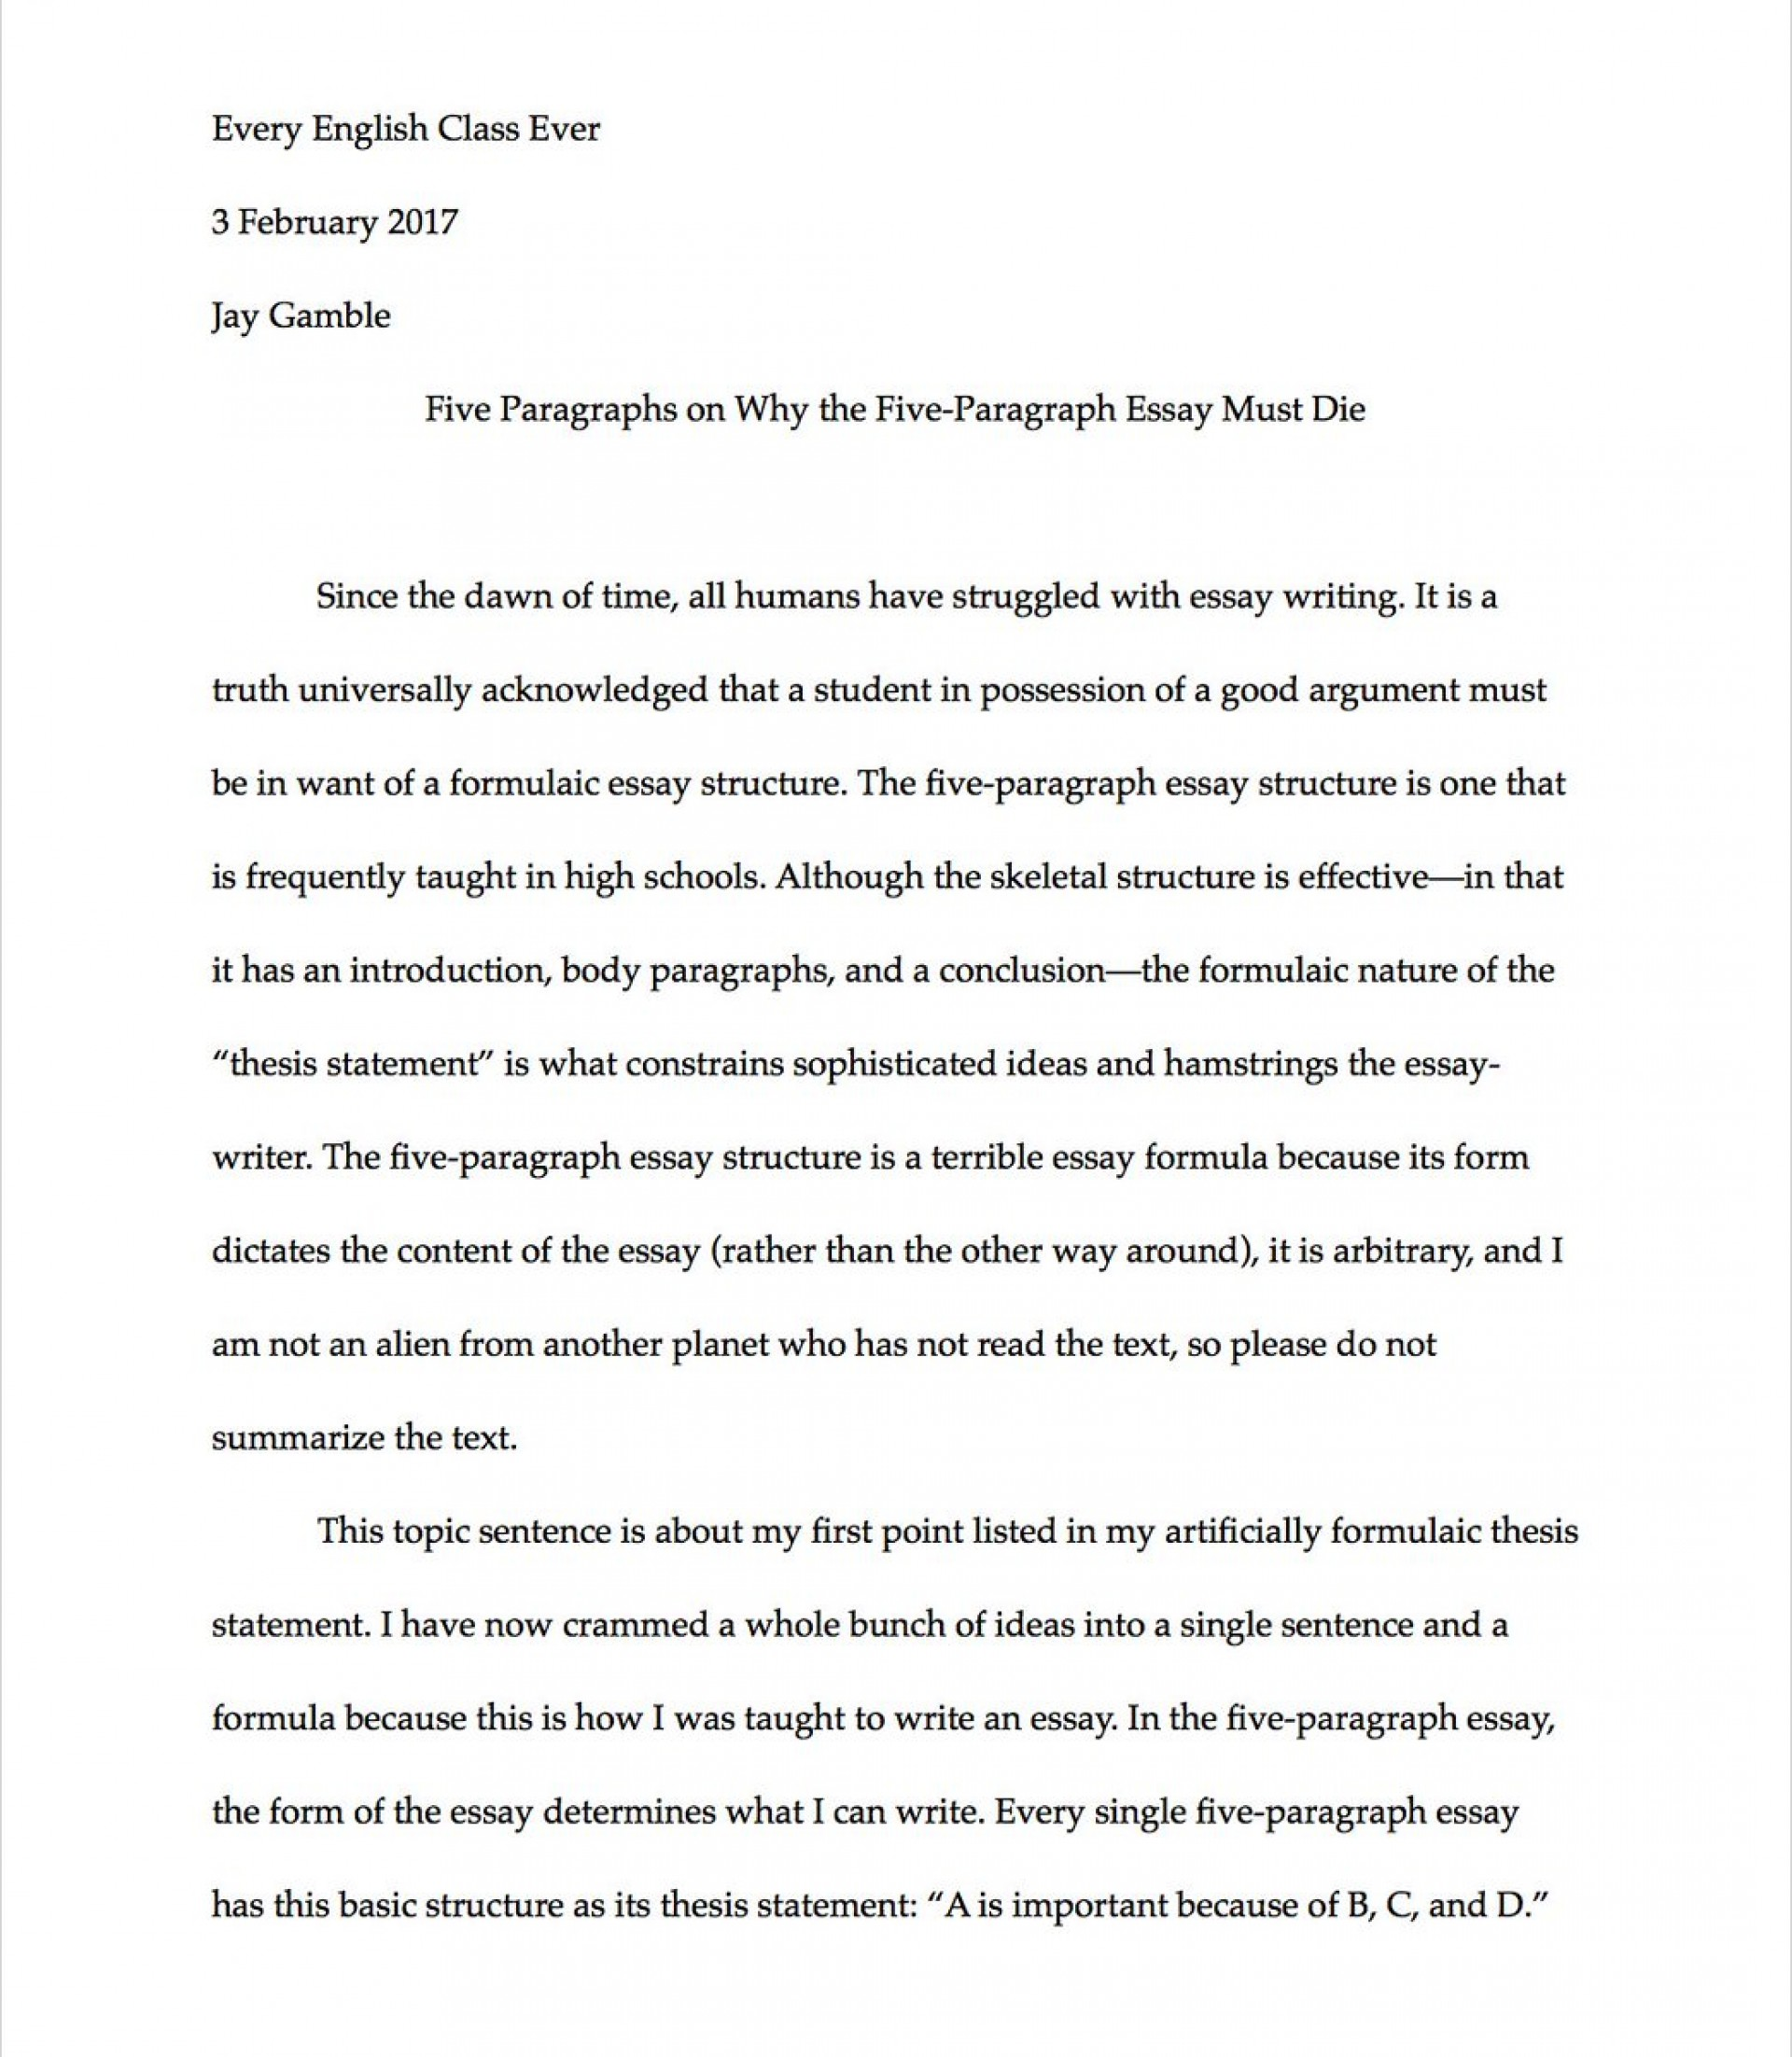 005 Essay Example Paragraph Remarkable 5 Outline Conclusion Spacing 1920